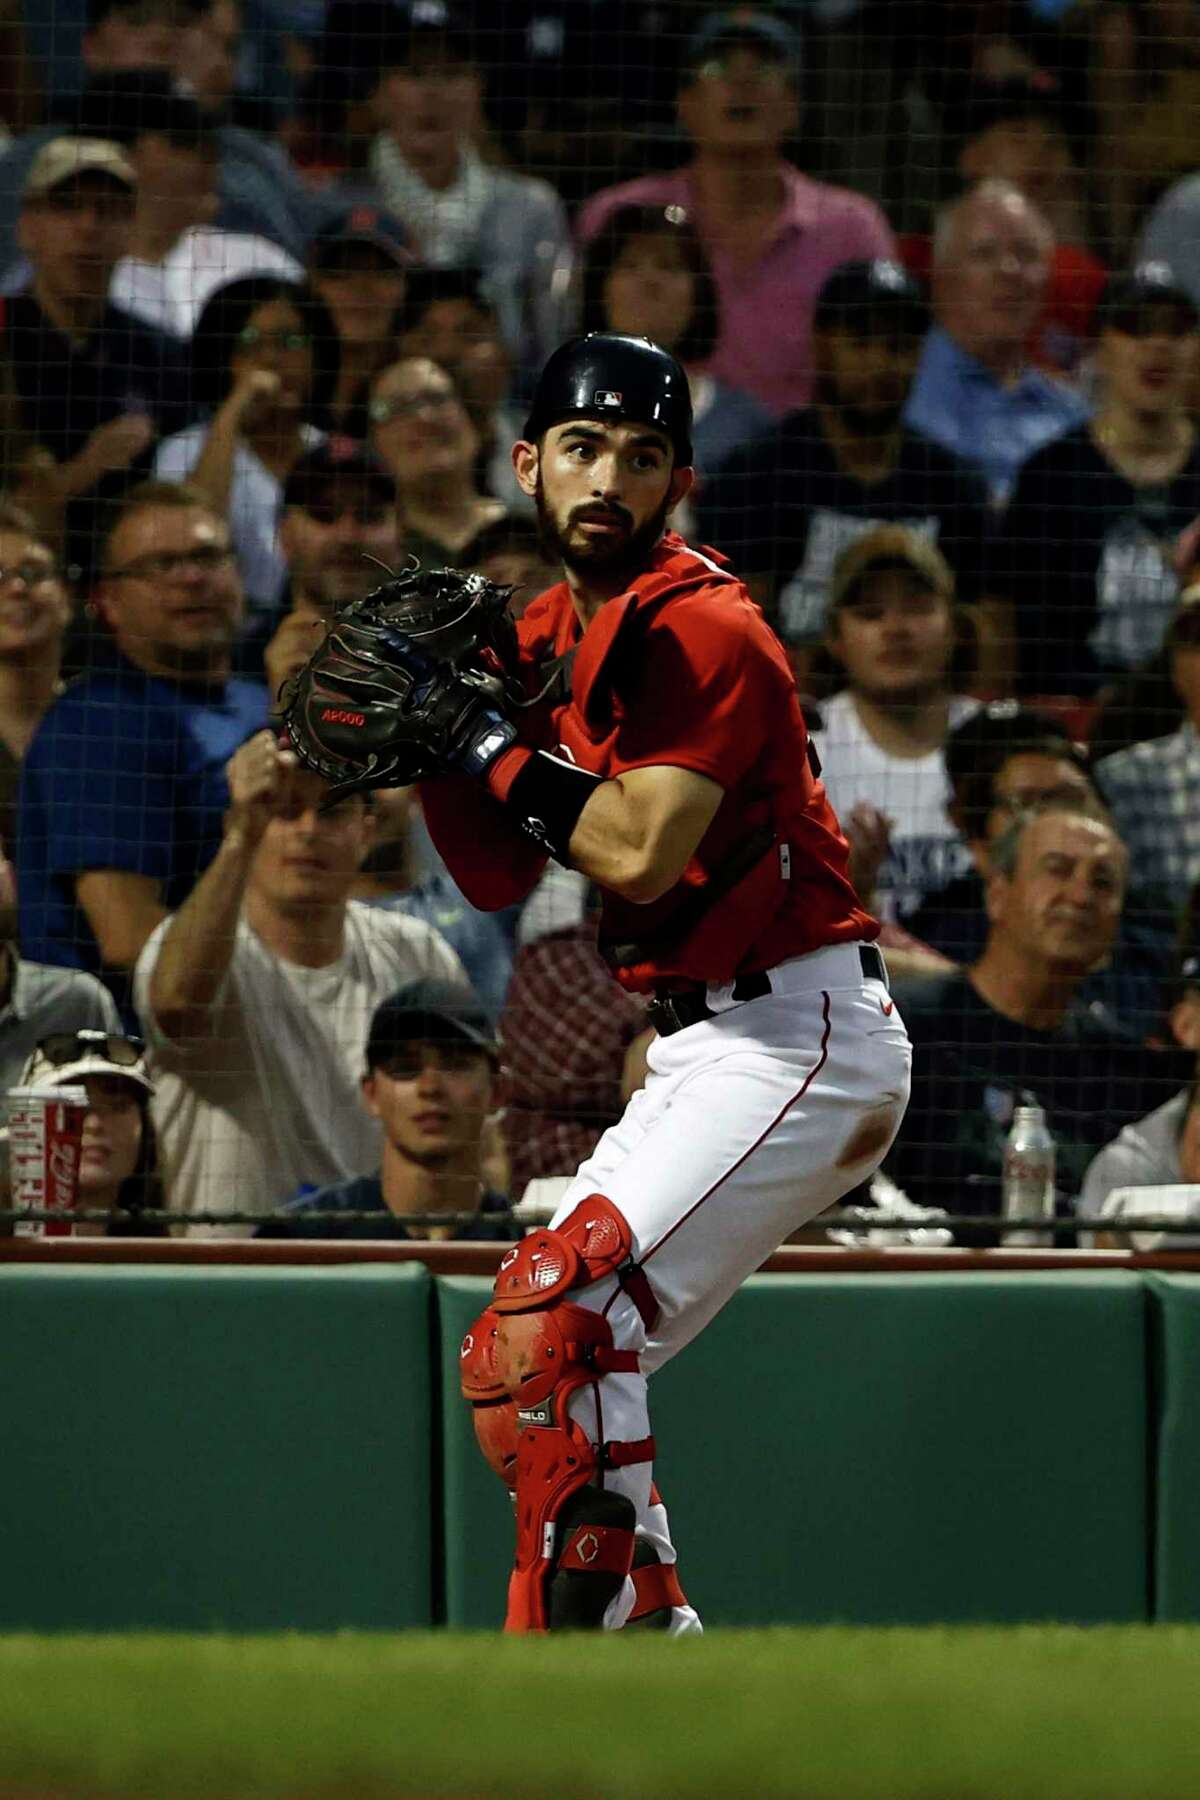 BOSTON, MA - JUNE 26: Catcher Connor Wong #74 of the Boston Red Sox checks base runners after gathering in a wild pitch during the fourth inning against the New York Yankees at Fenway Park on June 26, 2021 in Boston, Massachusetts. (Photo By Winslow Townson/Getty Images)